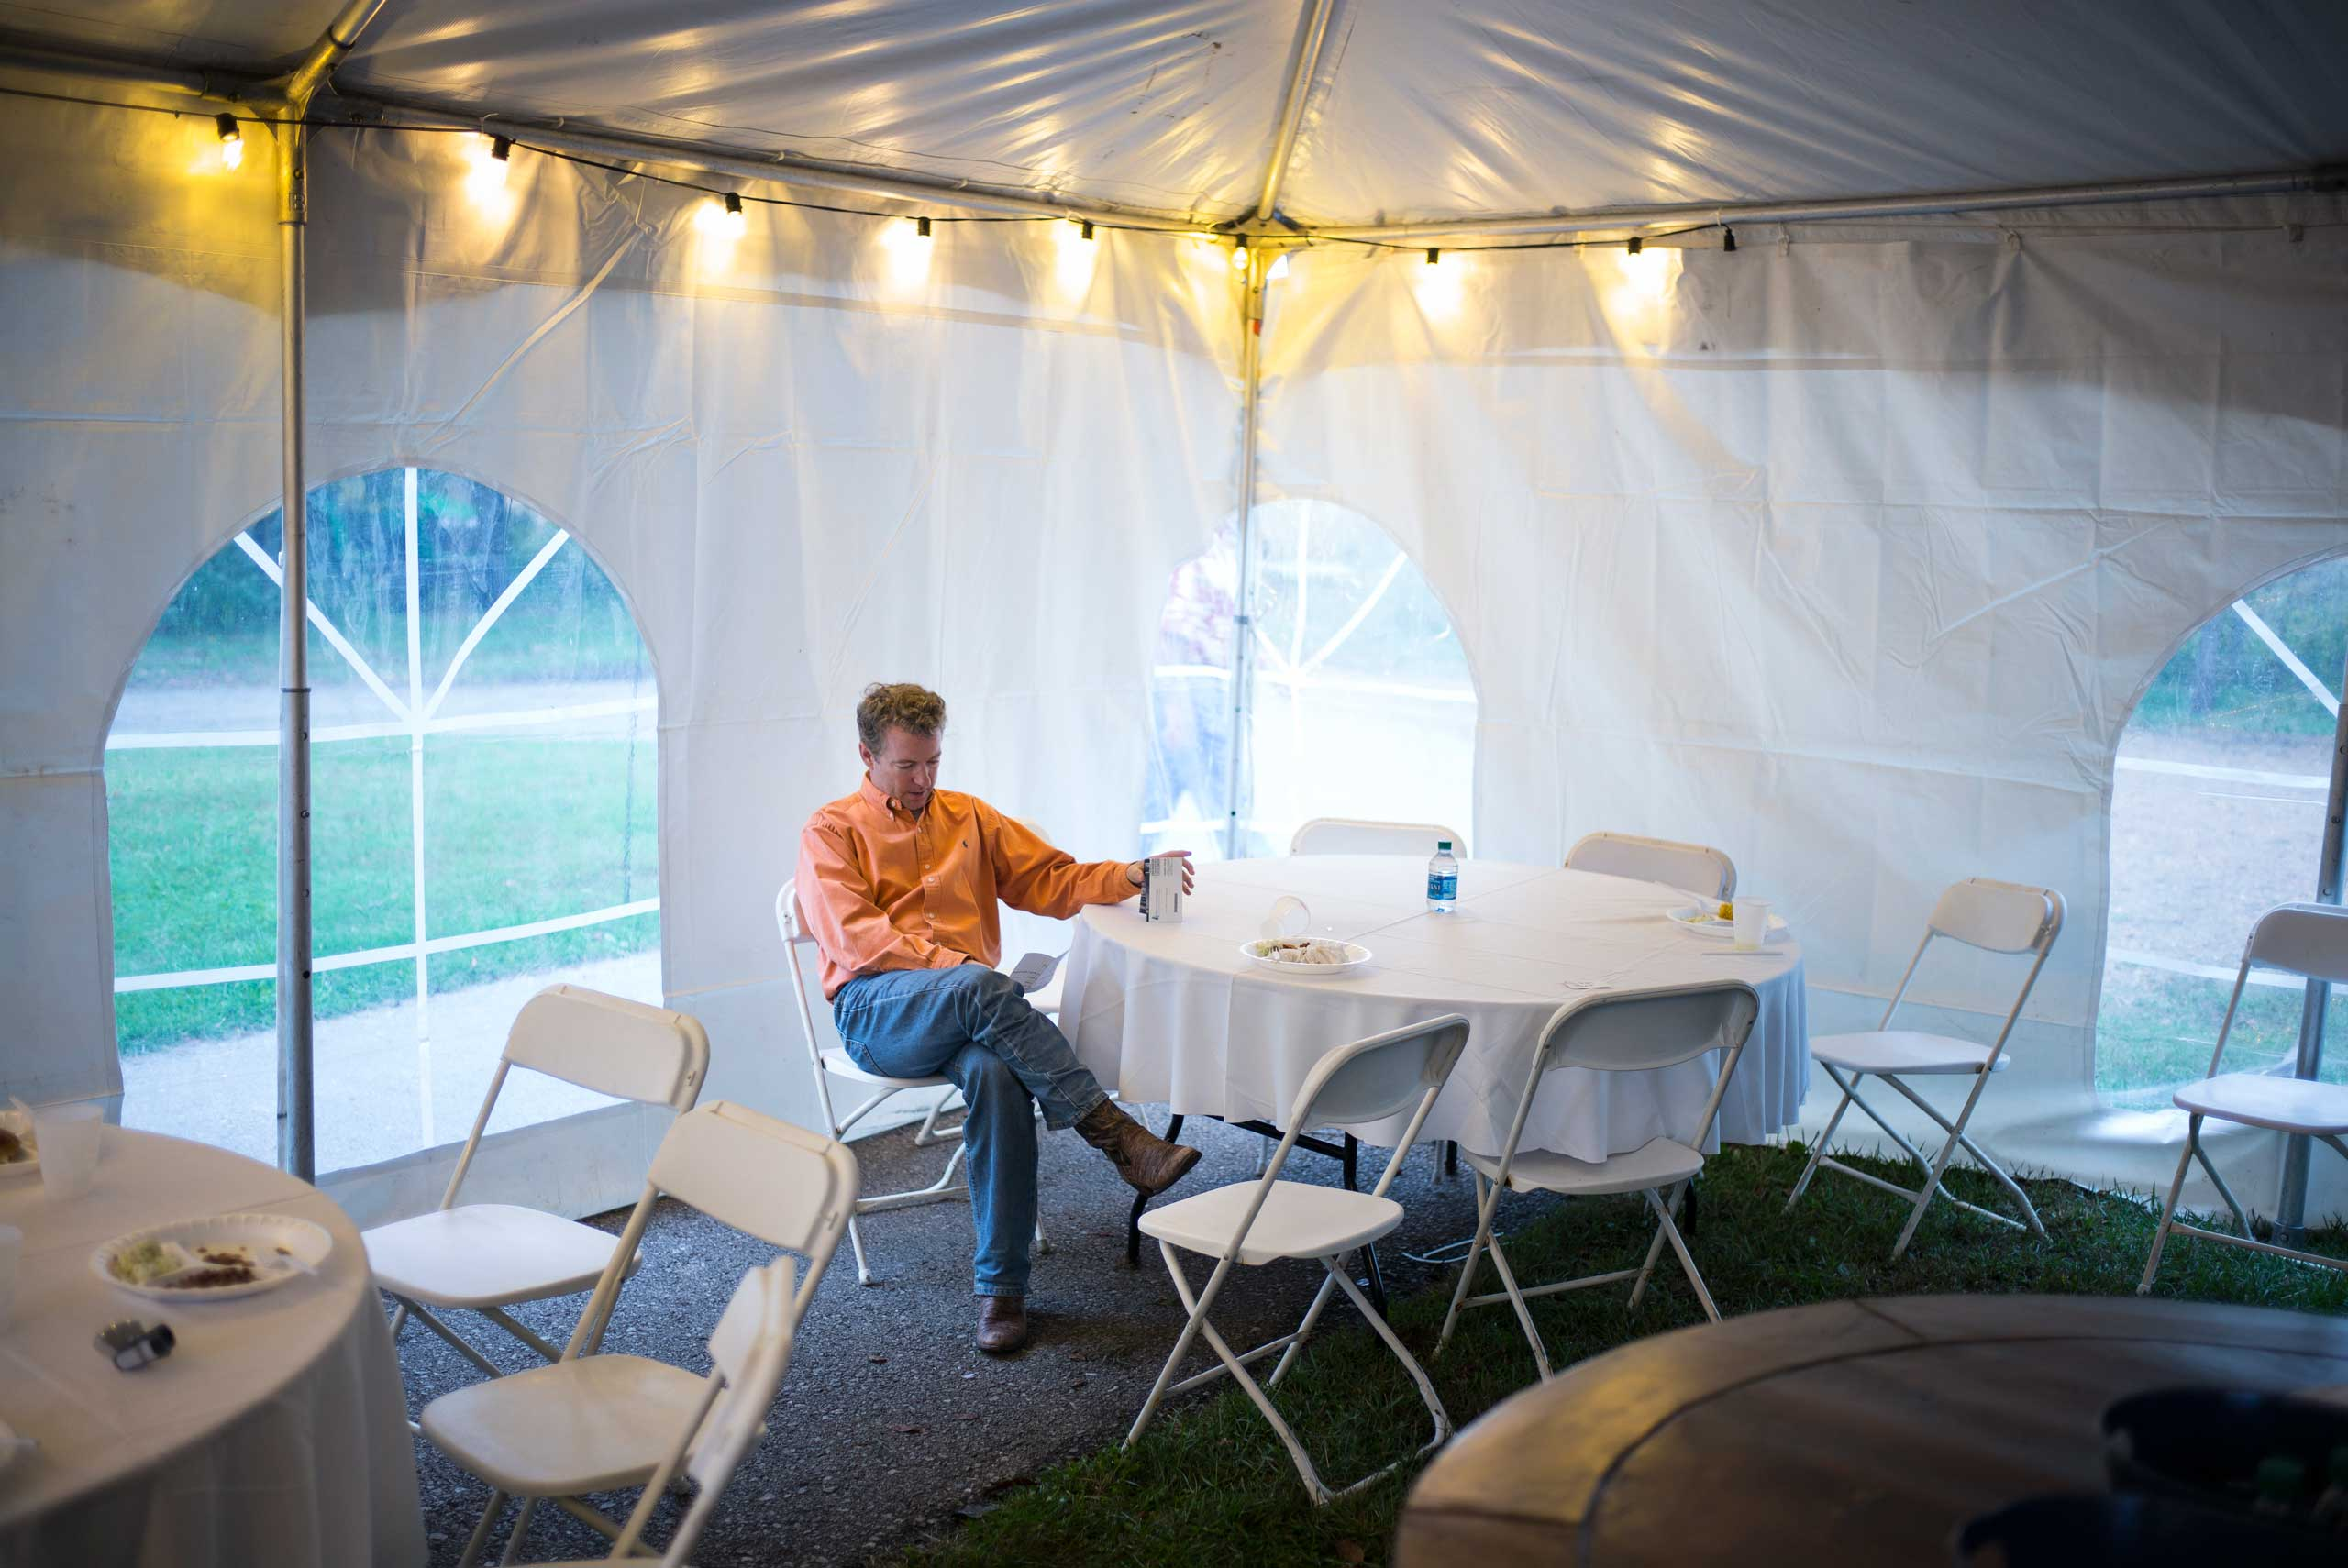 In a back tent, Senator Paul manages to have five minutes alone to go over his speech at the Donnelly Barn in Bowling Green, Ky. on Oct. 12, 2014.